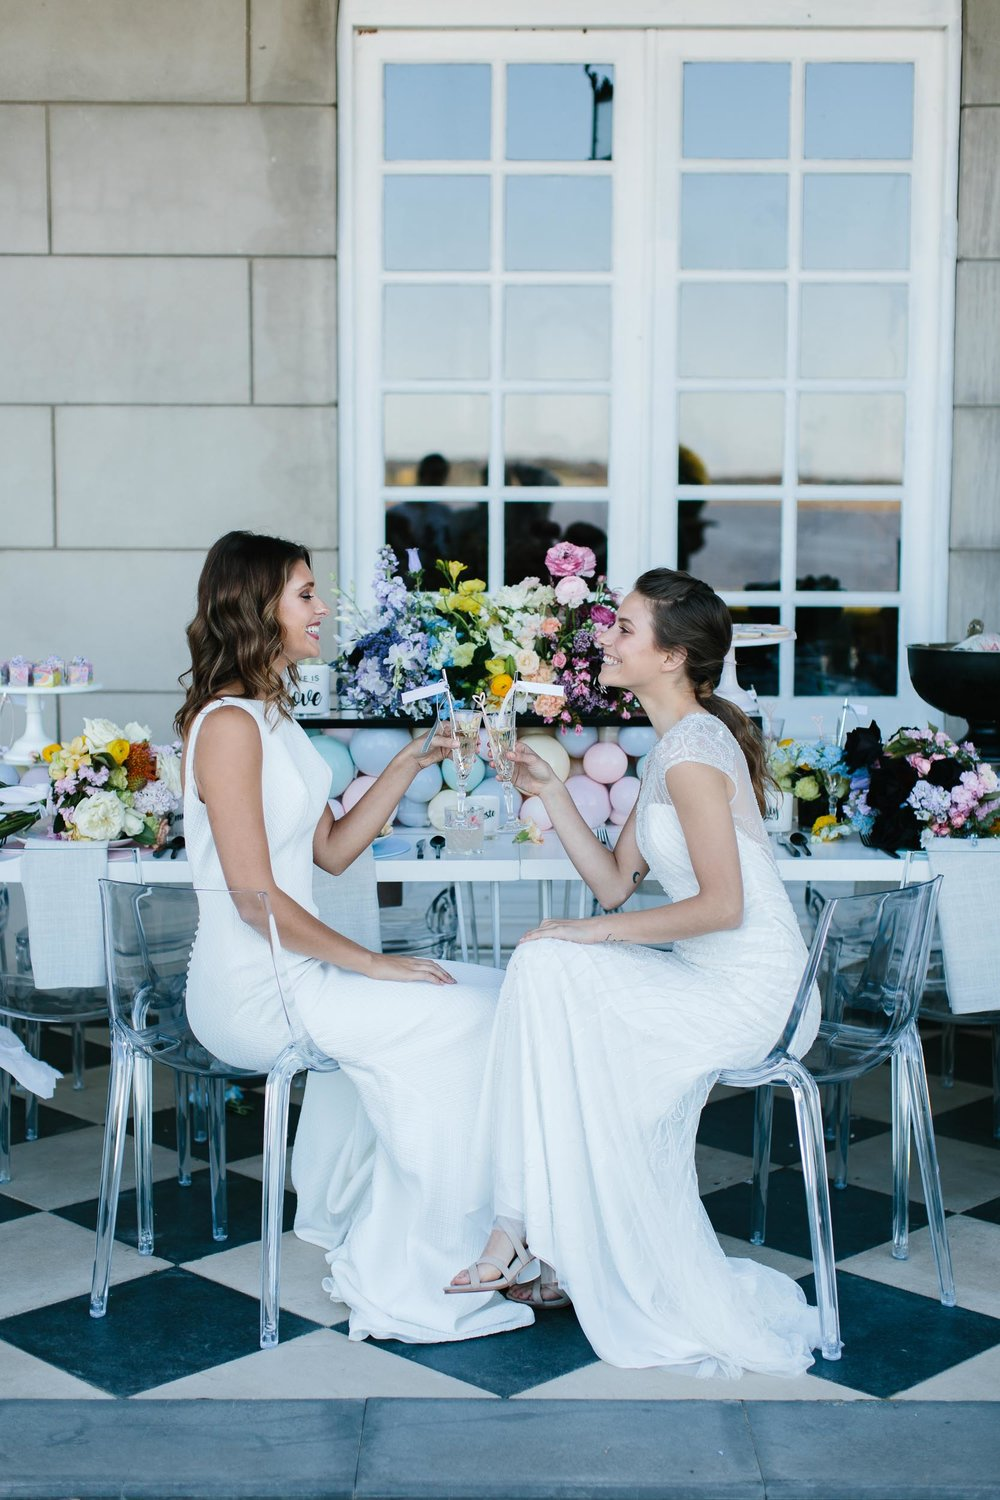 Same Sex Wedding Reception Photo | Wedding Photography by Kas Richards